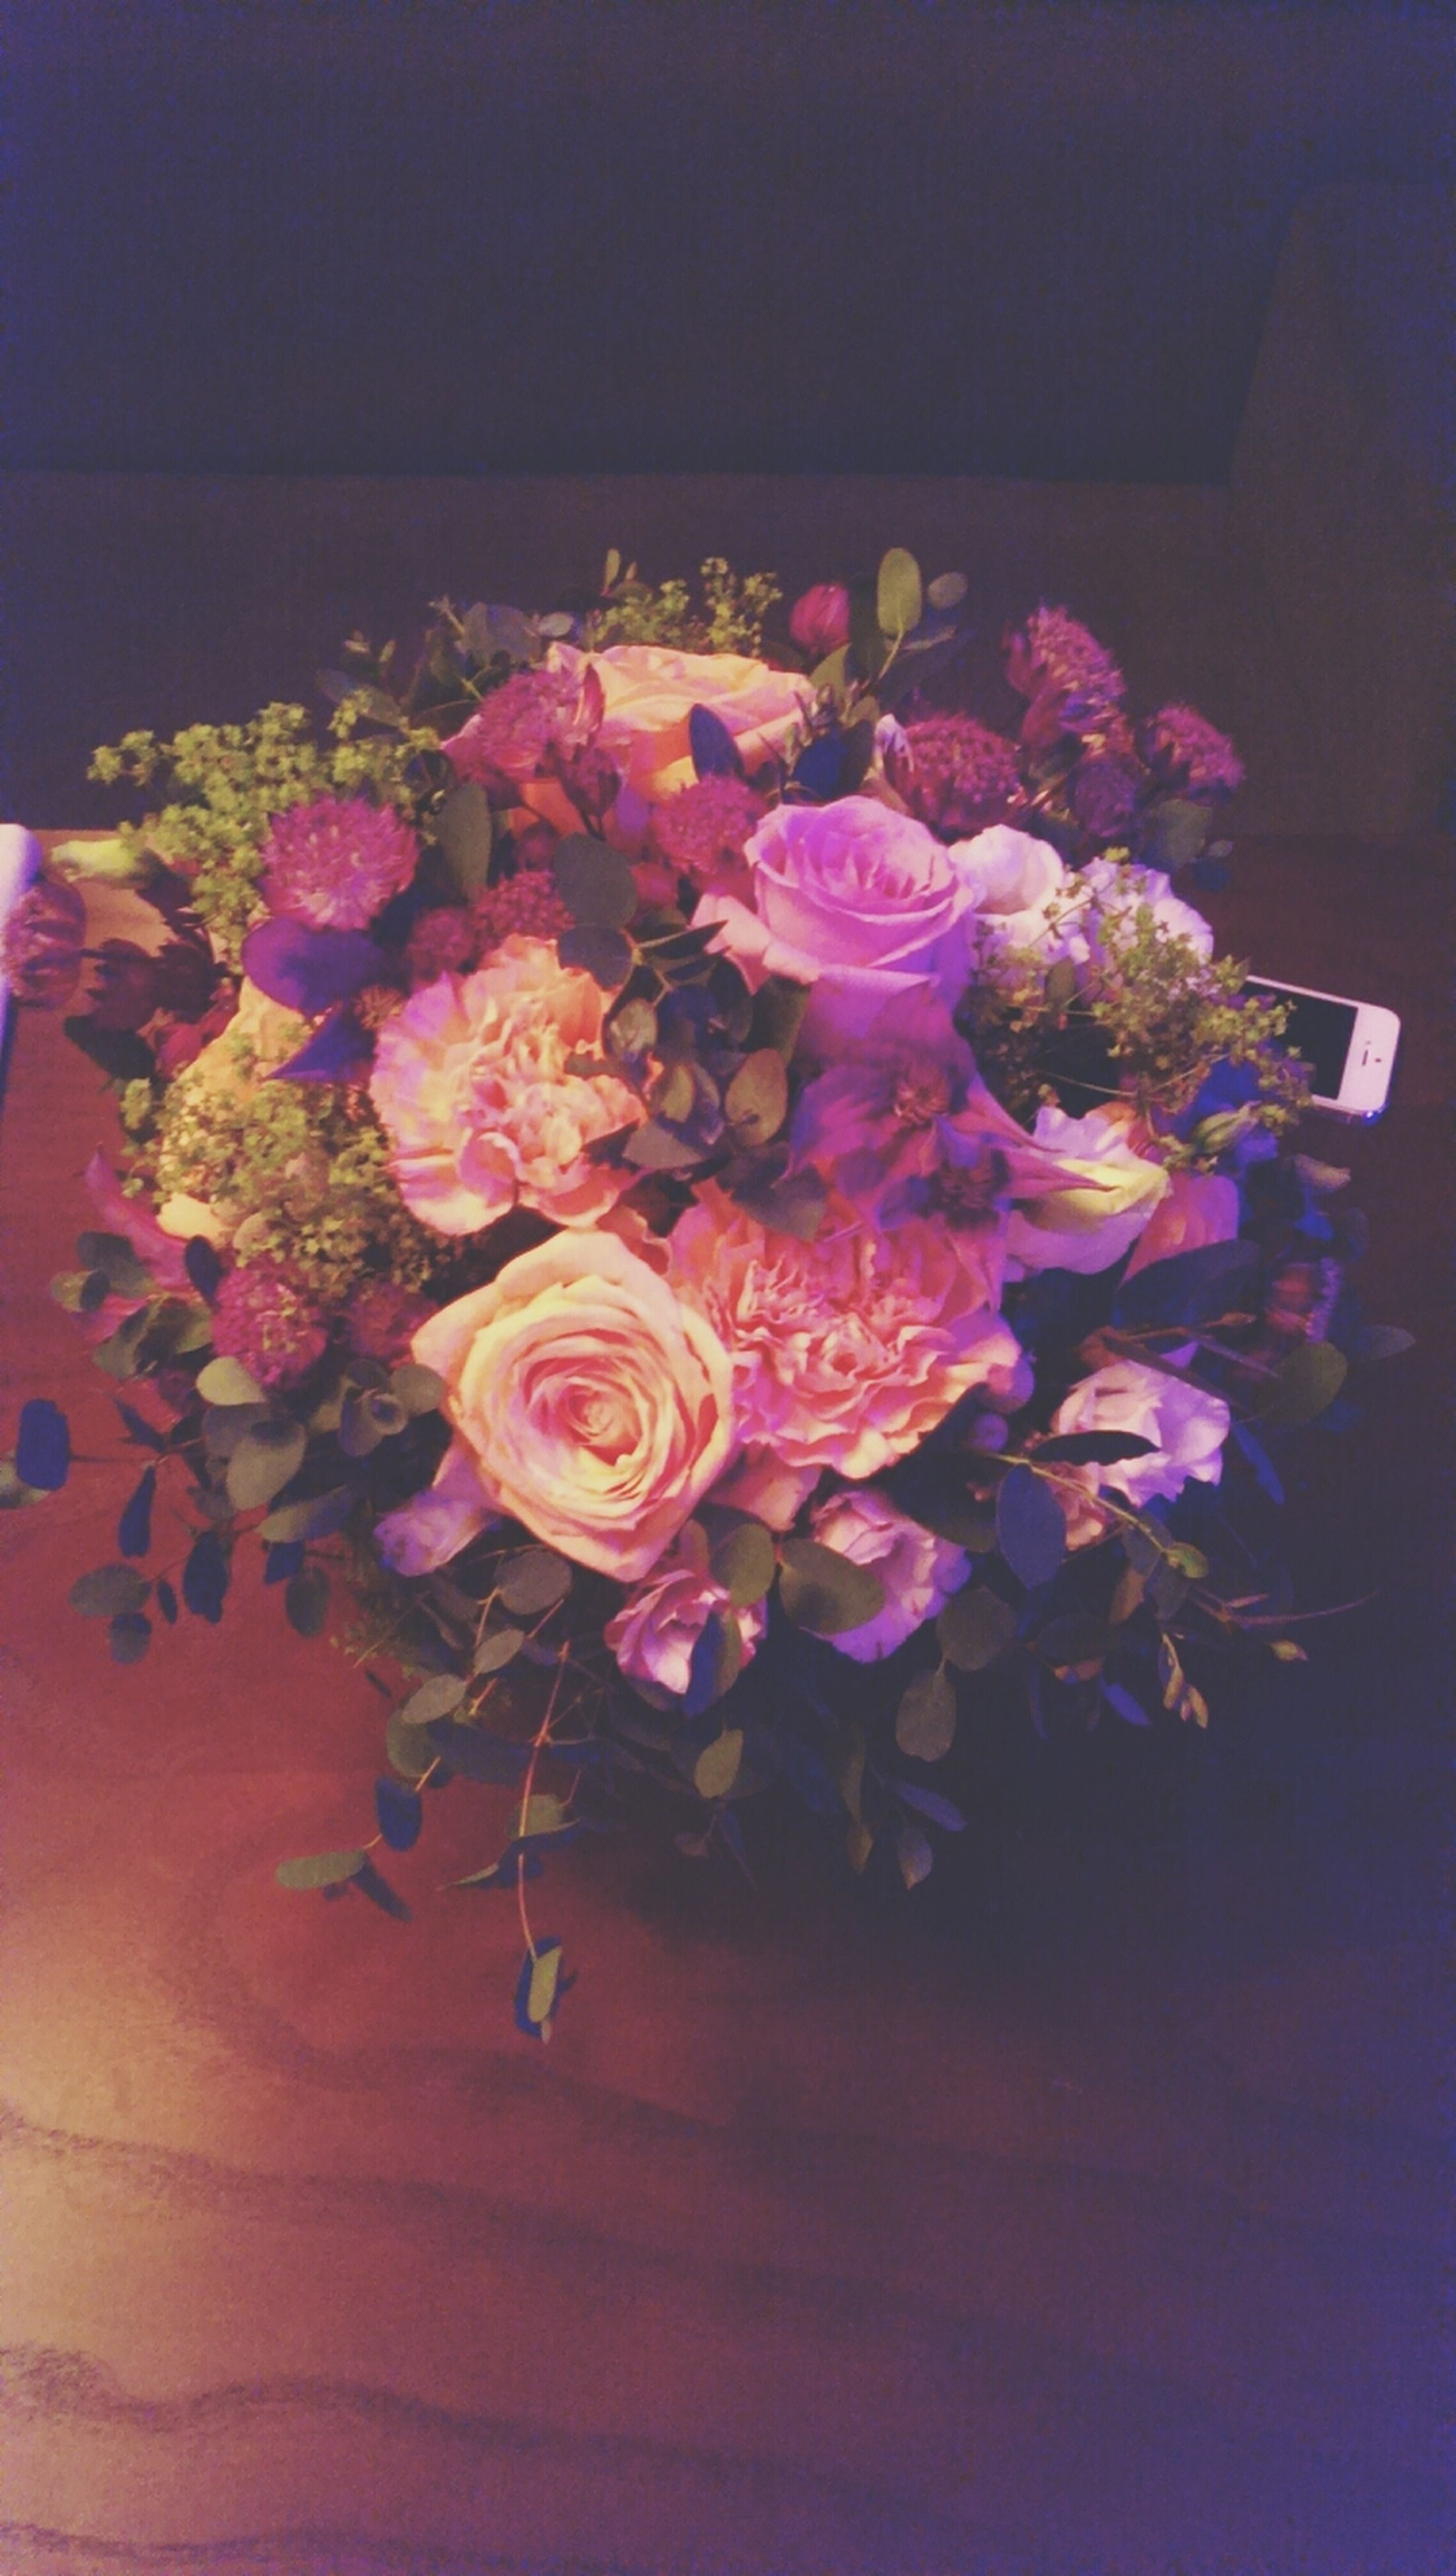 flower, indoors, freshness, petal, fragility, flower head, vase, pink color, bunch of flowers, beauty in nature, bouquet, decoration, close-up, flower arrangement, plant, growth, nature, table, high angle view, purple